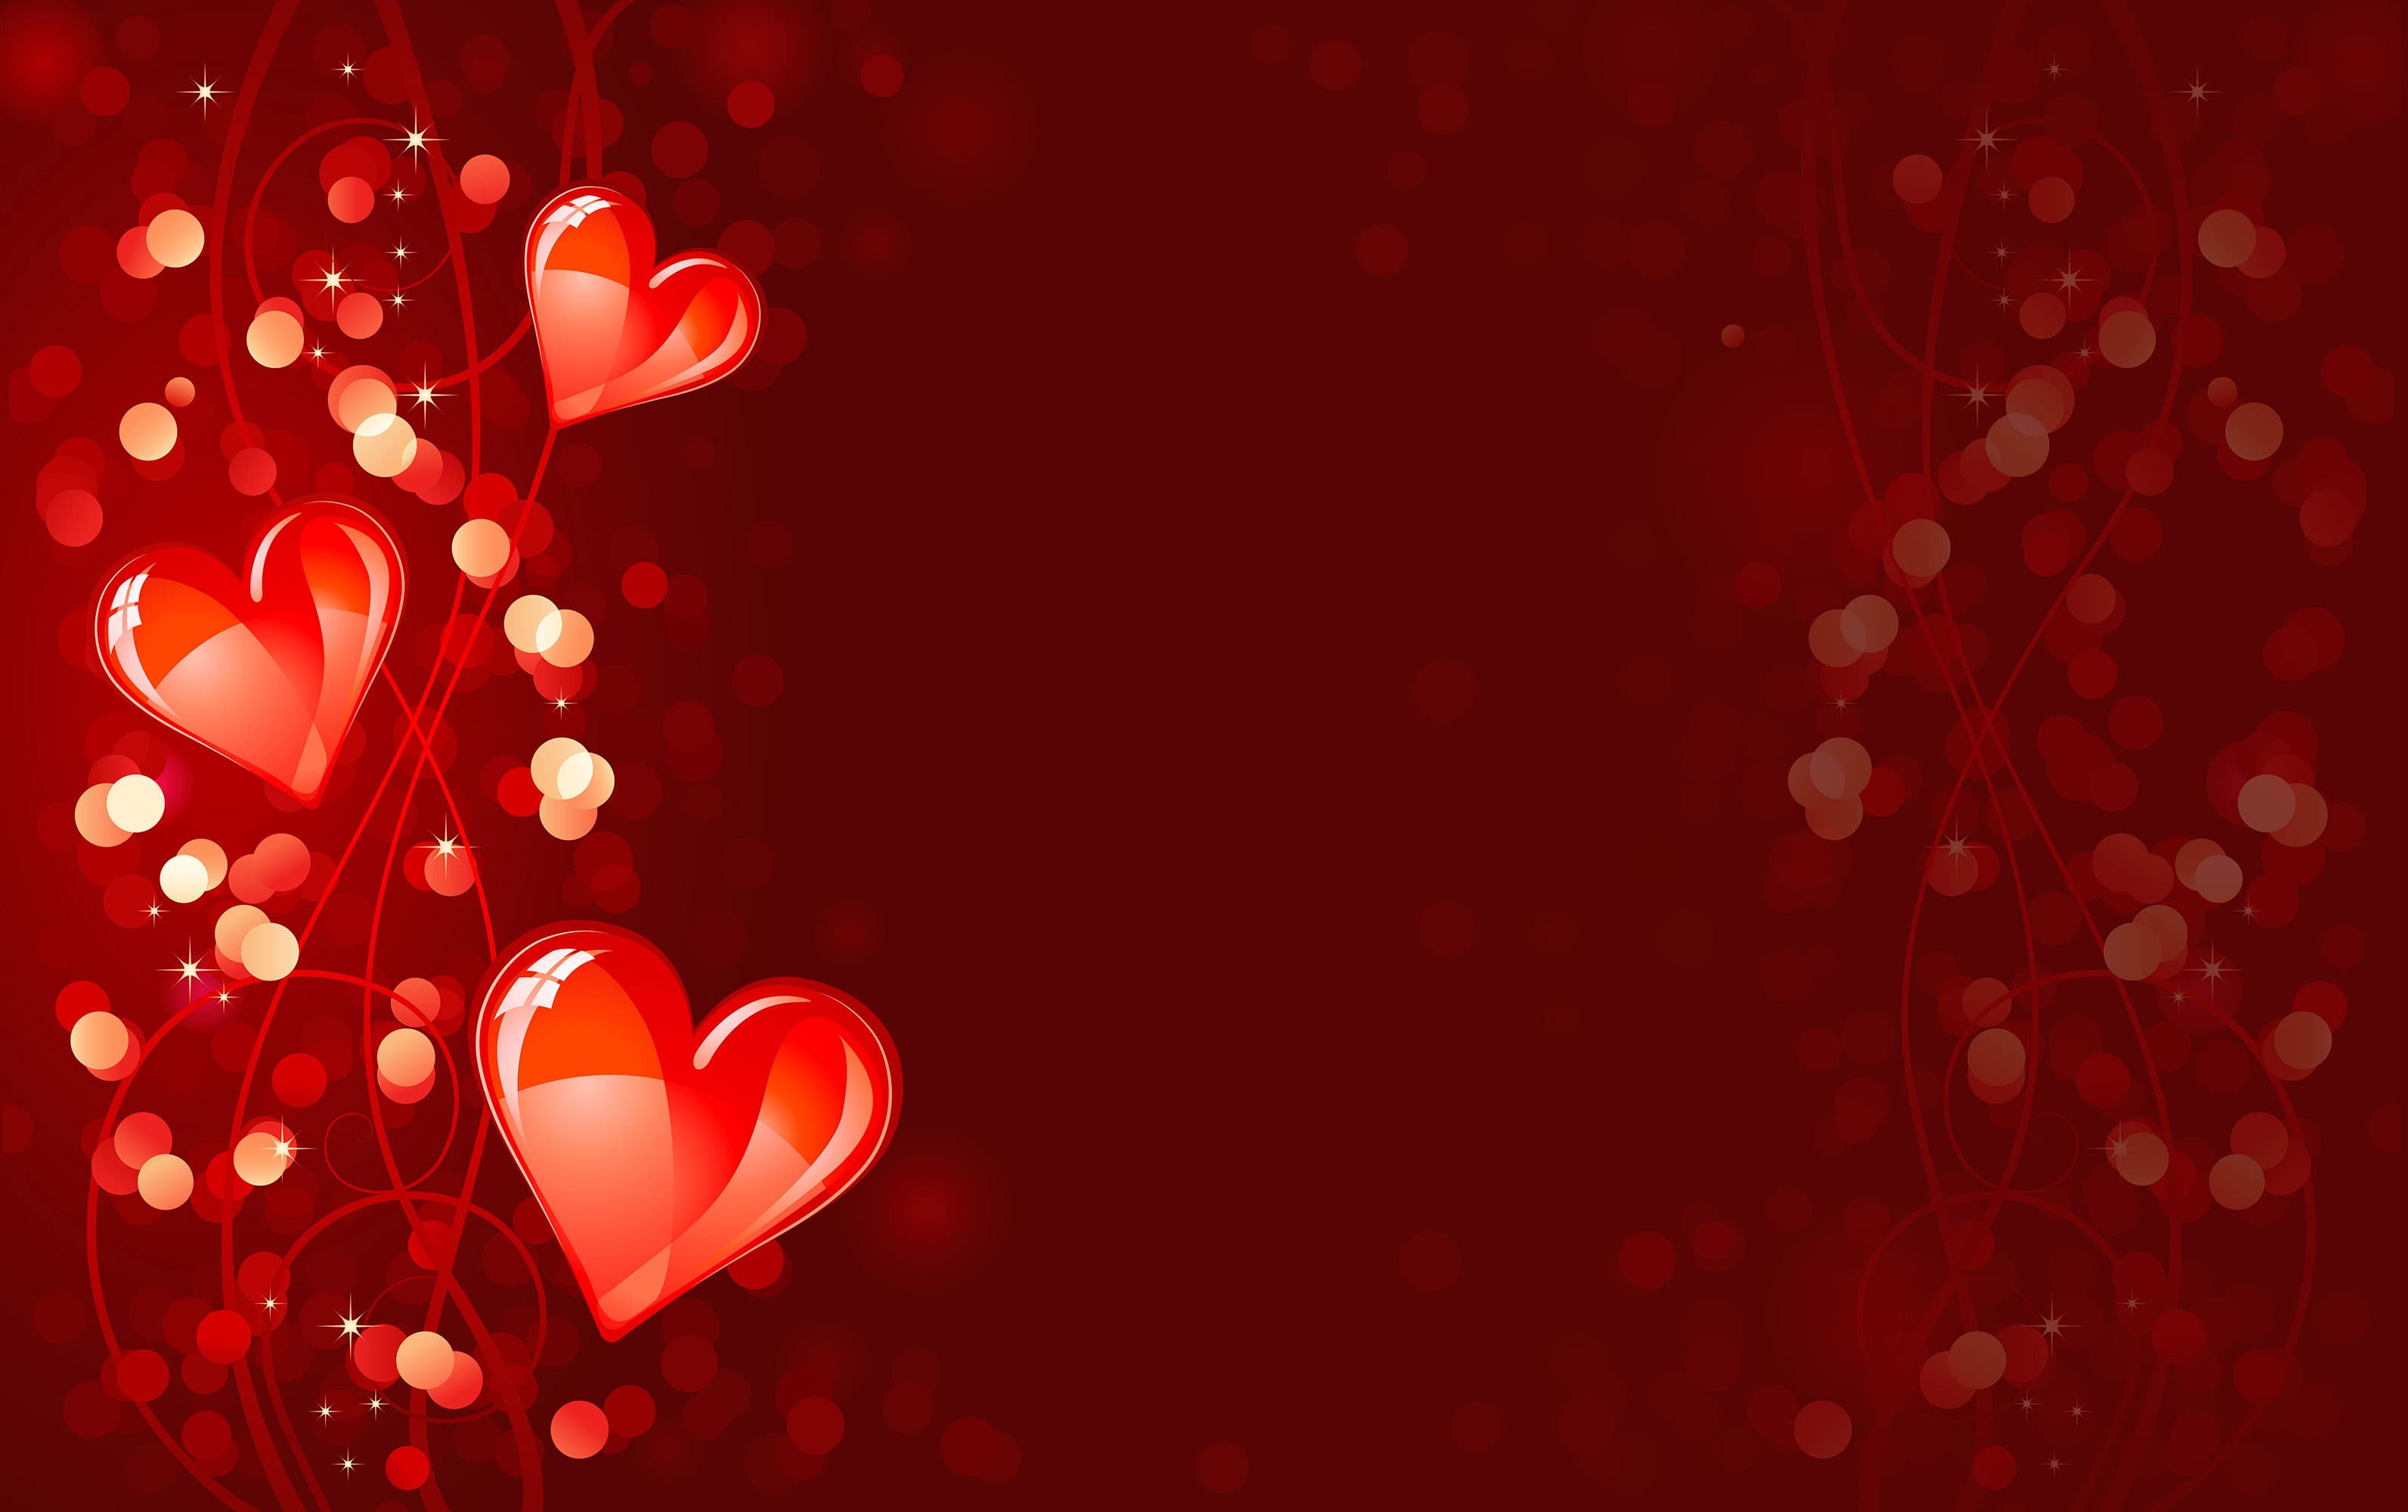 Valentine's Day Tablet PC wallpapers